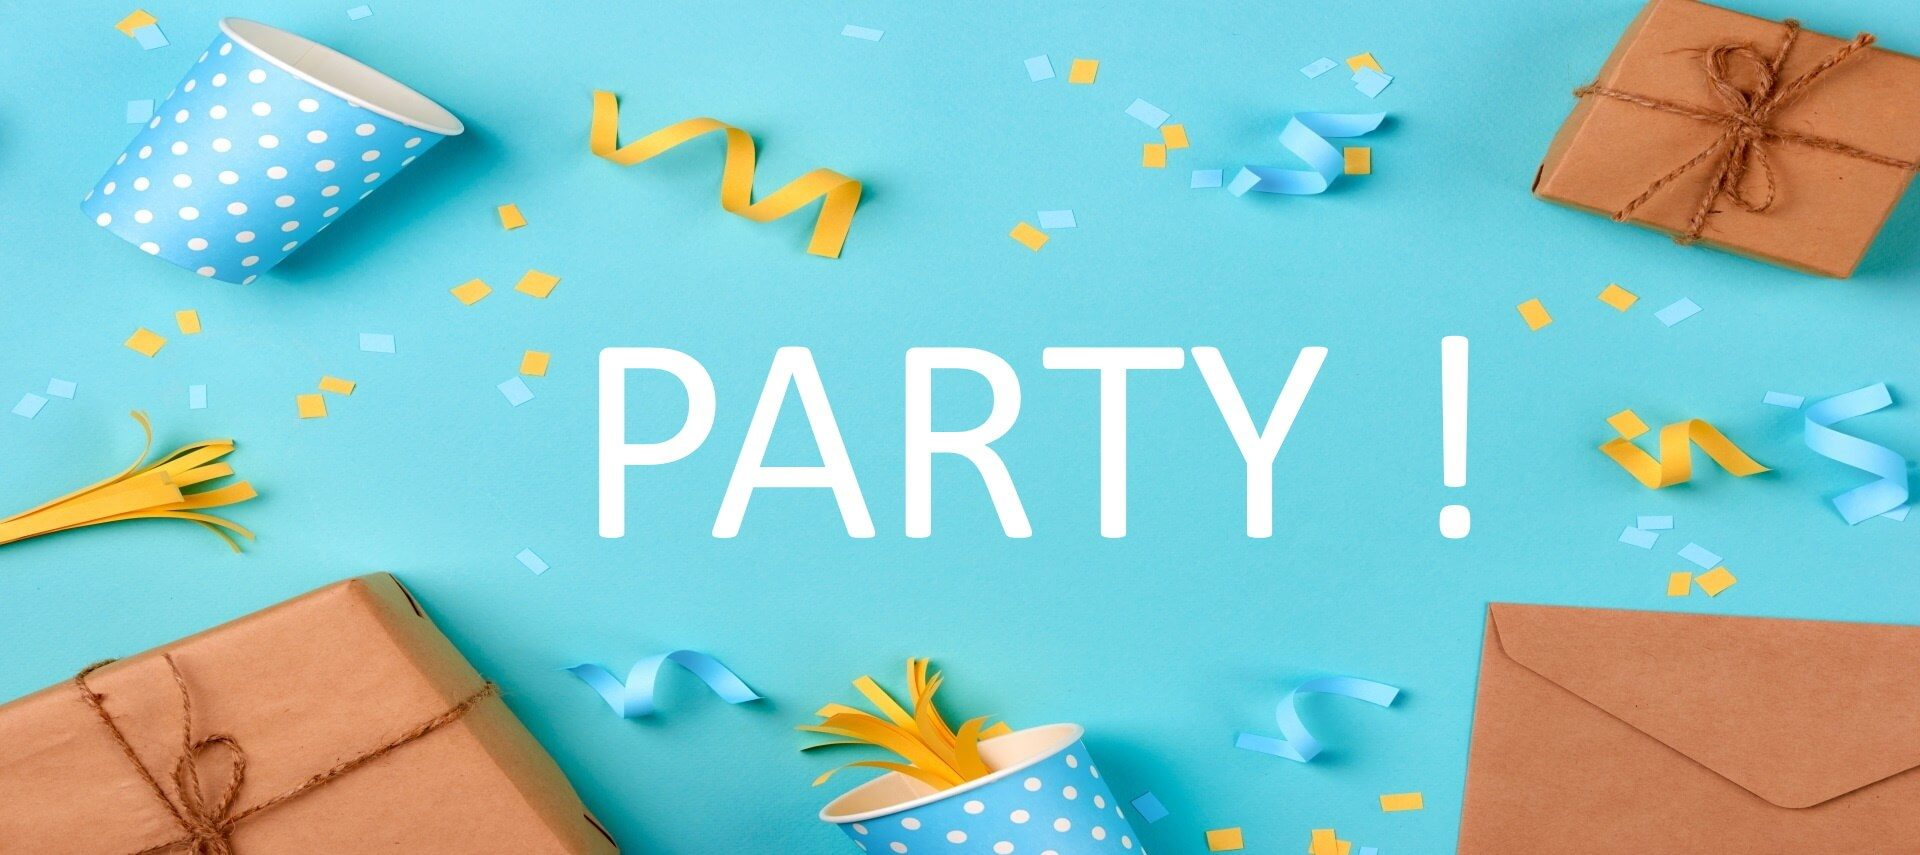 Gifts tied up in brown papaer, cups and noisemakers with confetti on a blue background with the word PARTY in white